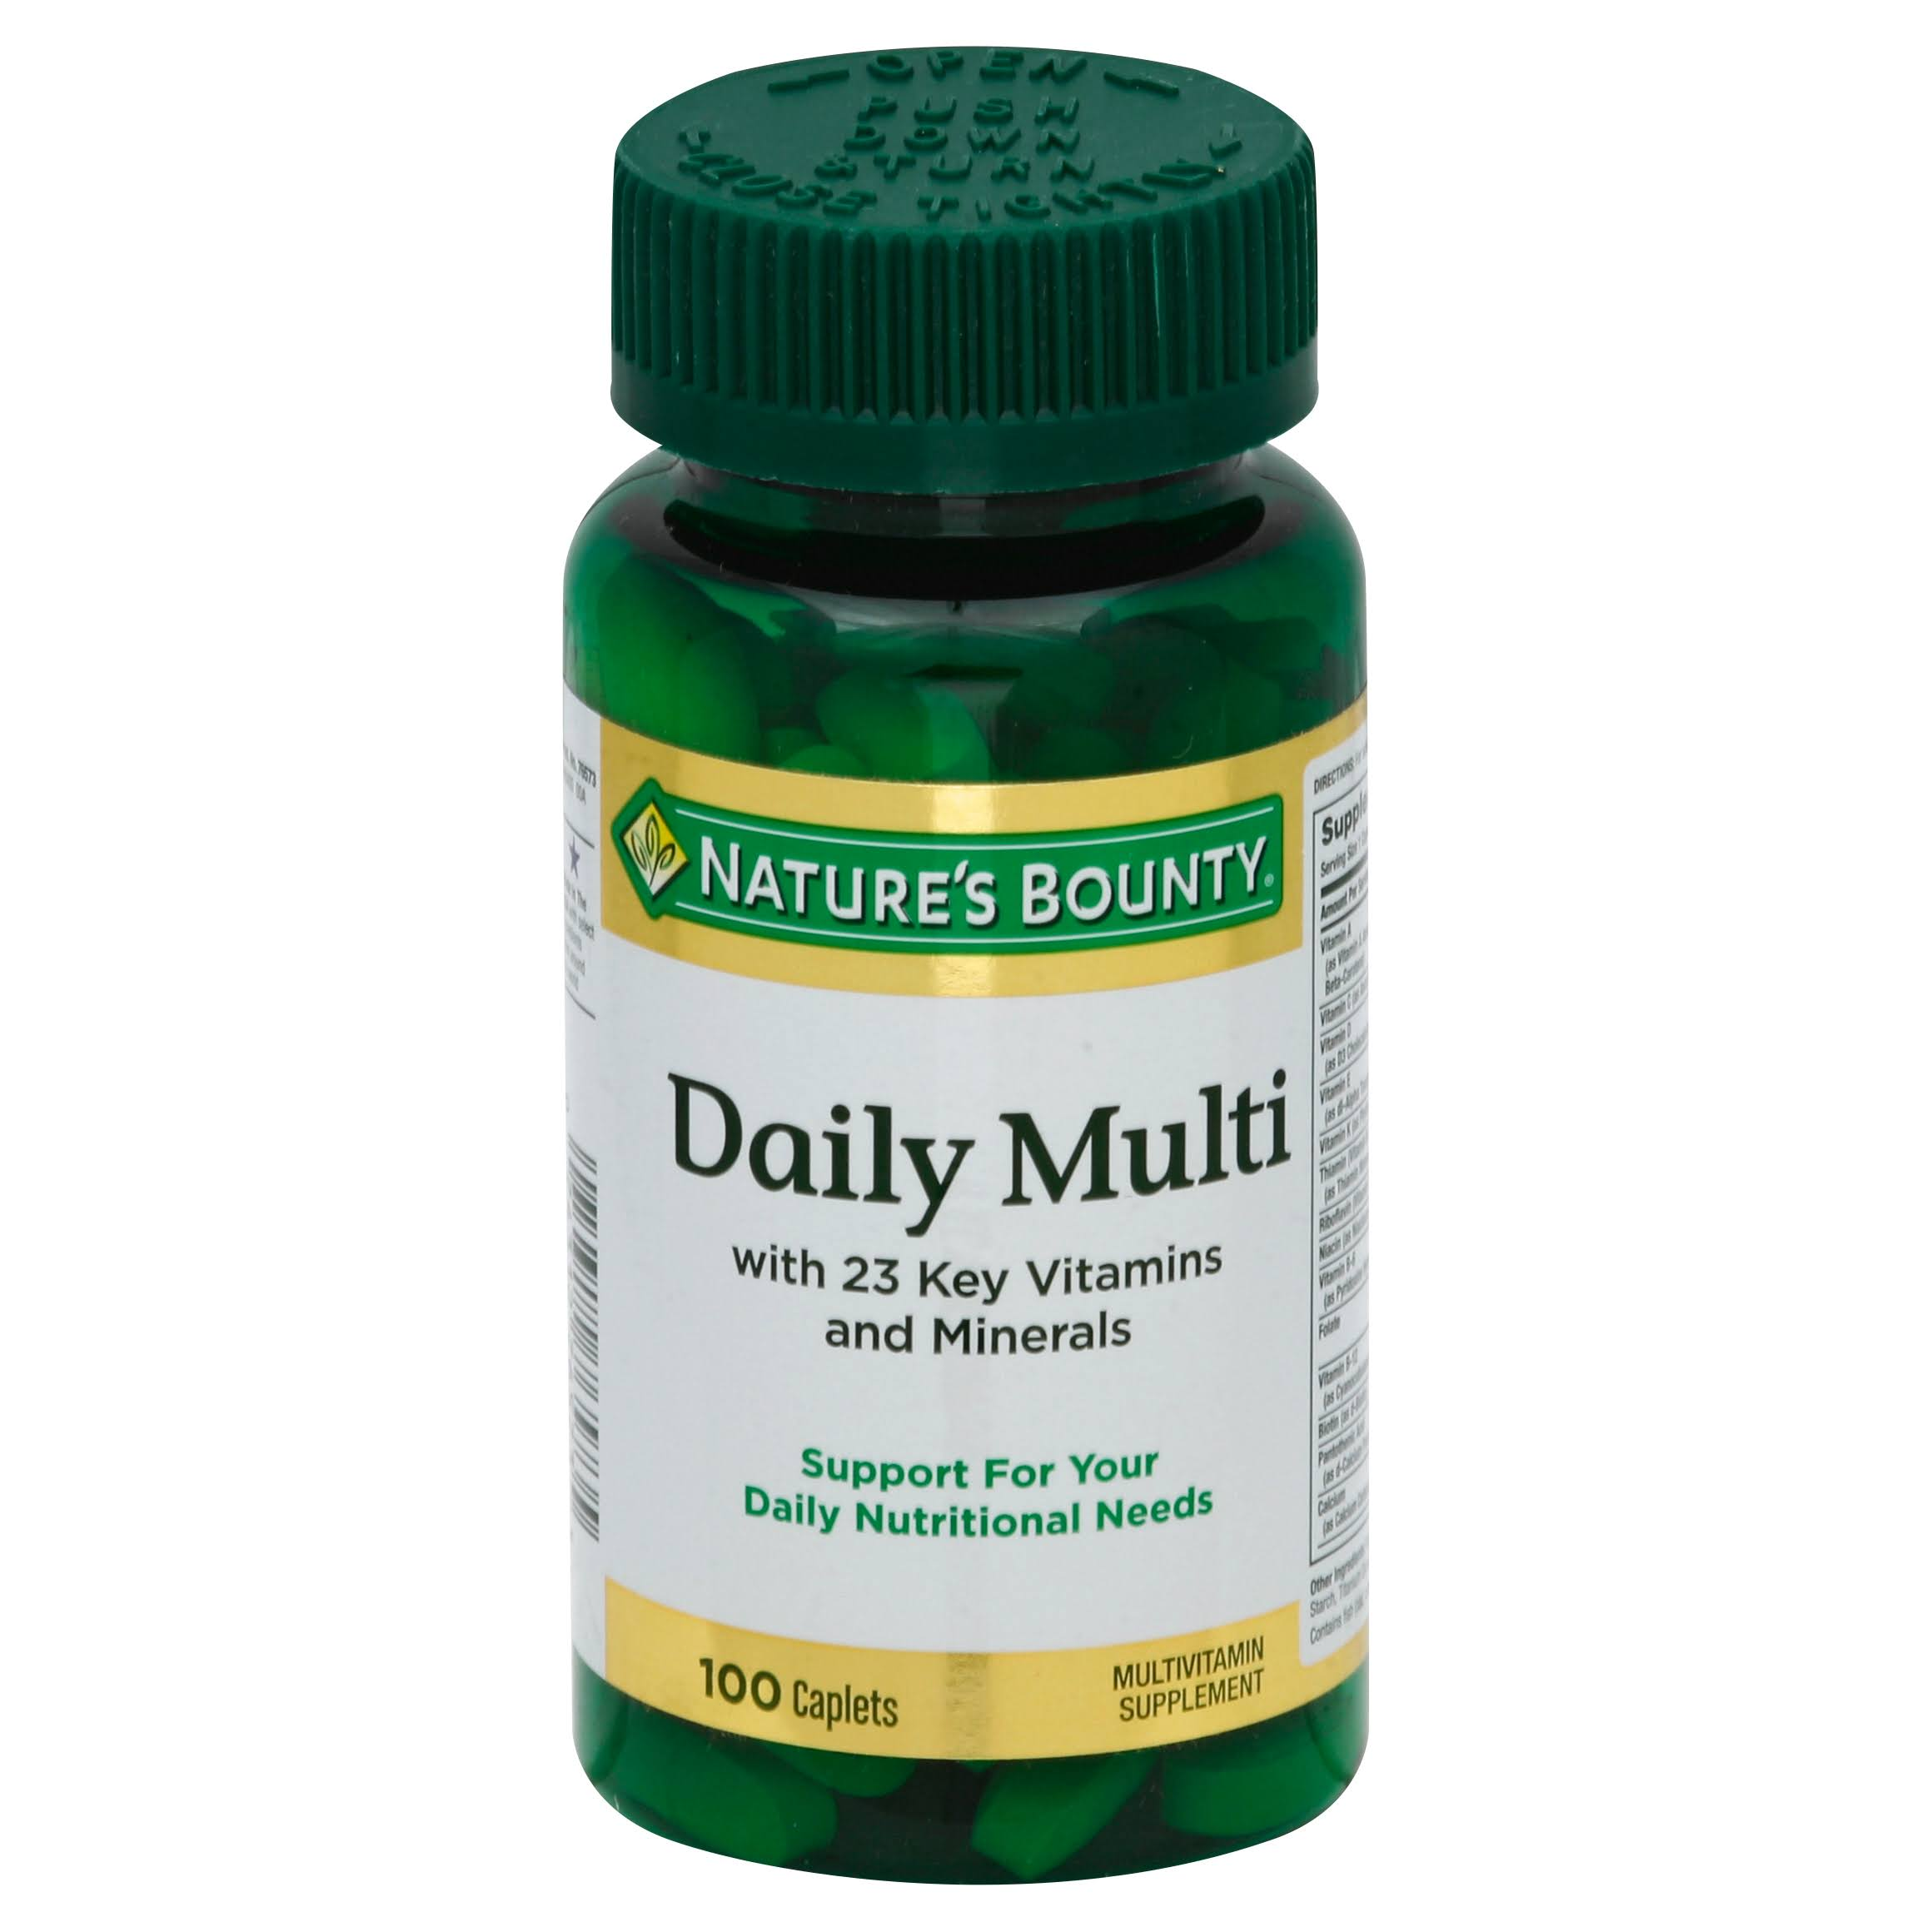 Nature's Bounty Daily Multi Multivitamin Supplement - 100 Caplets